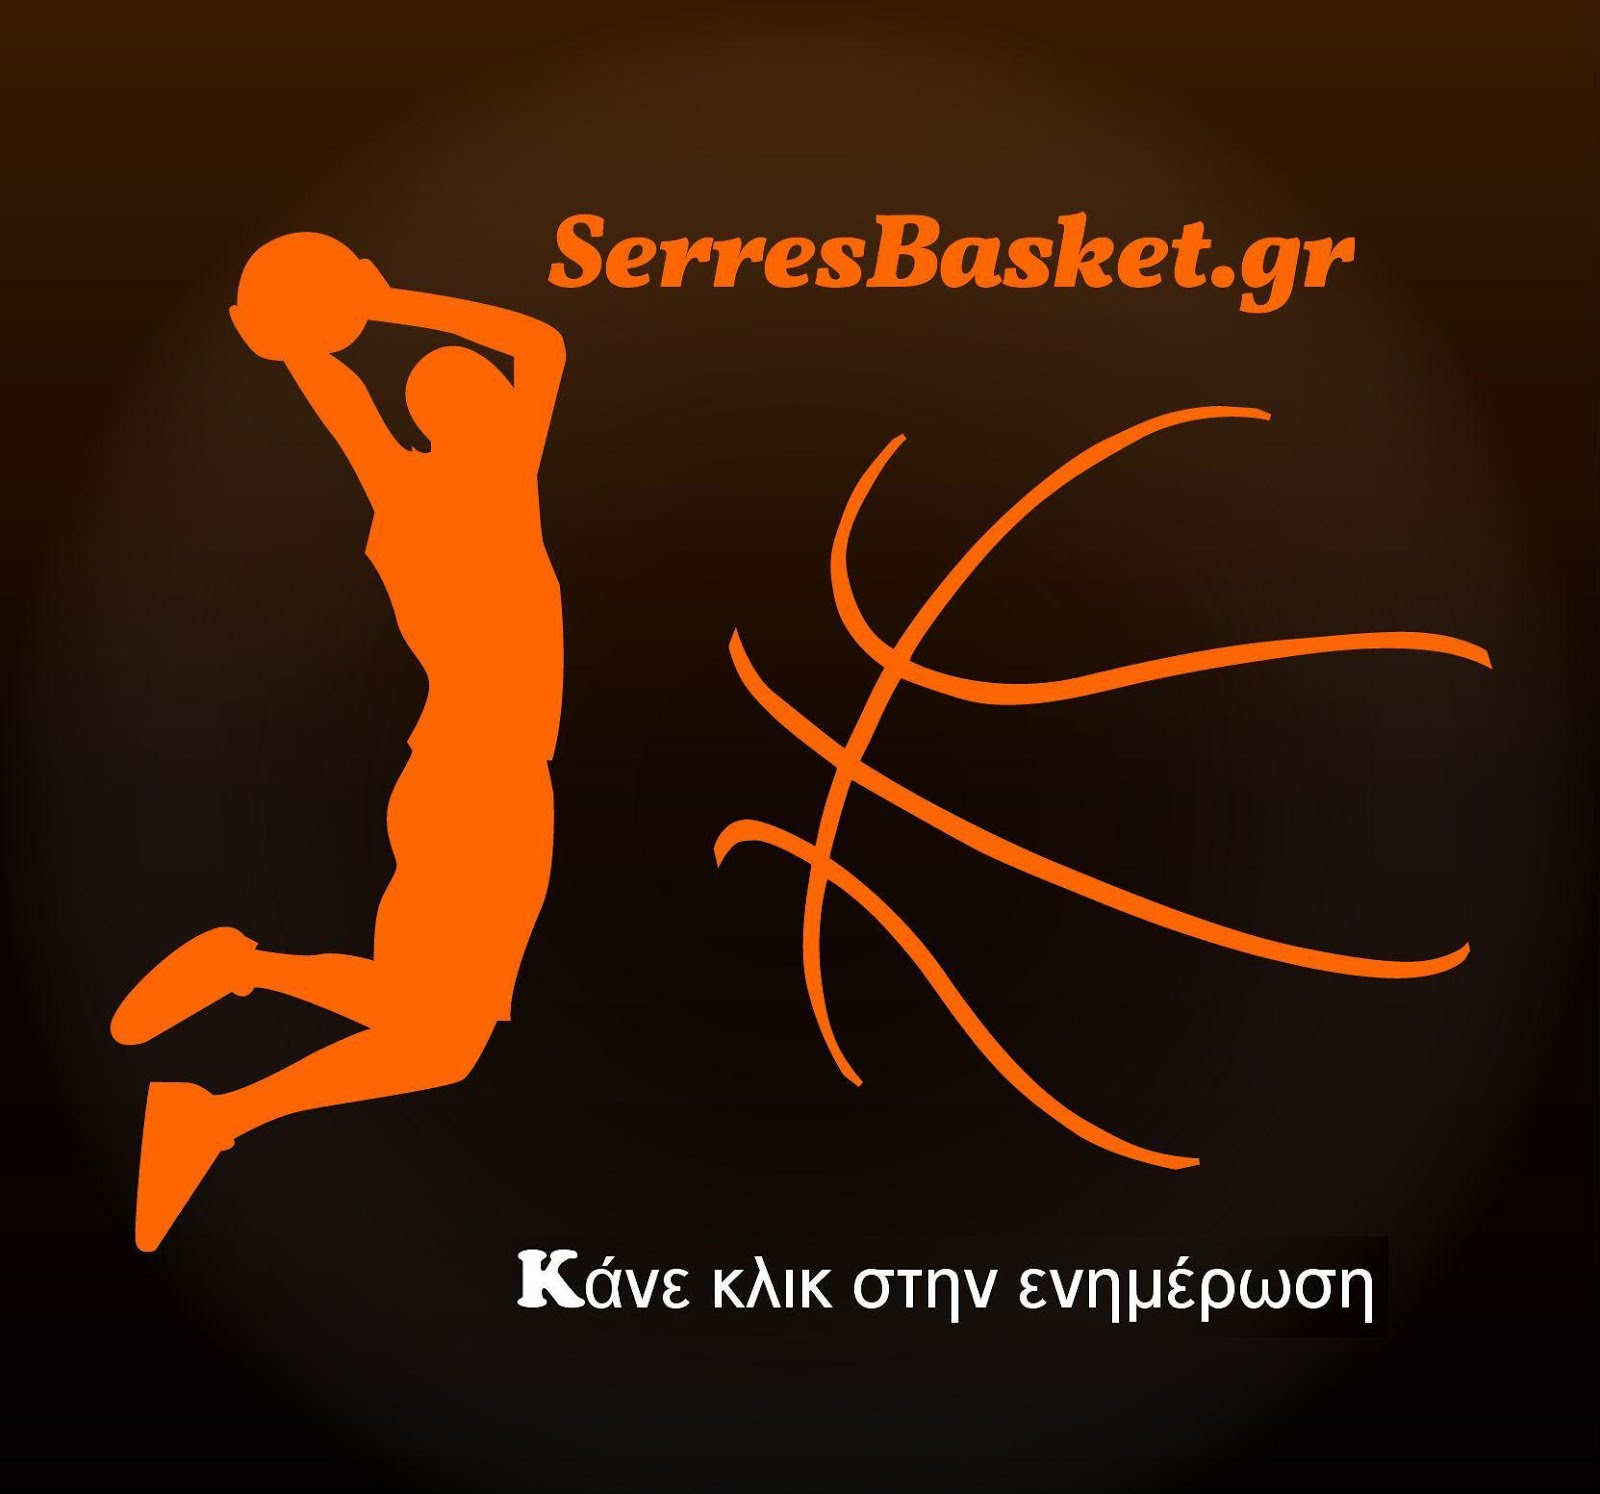 SerresBasket.gr